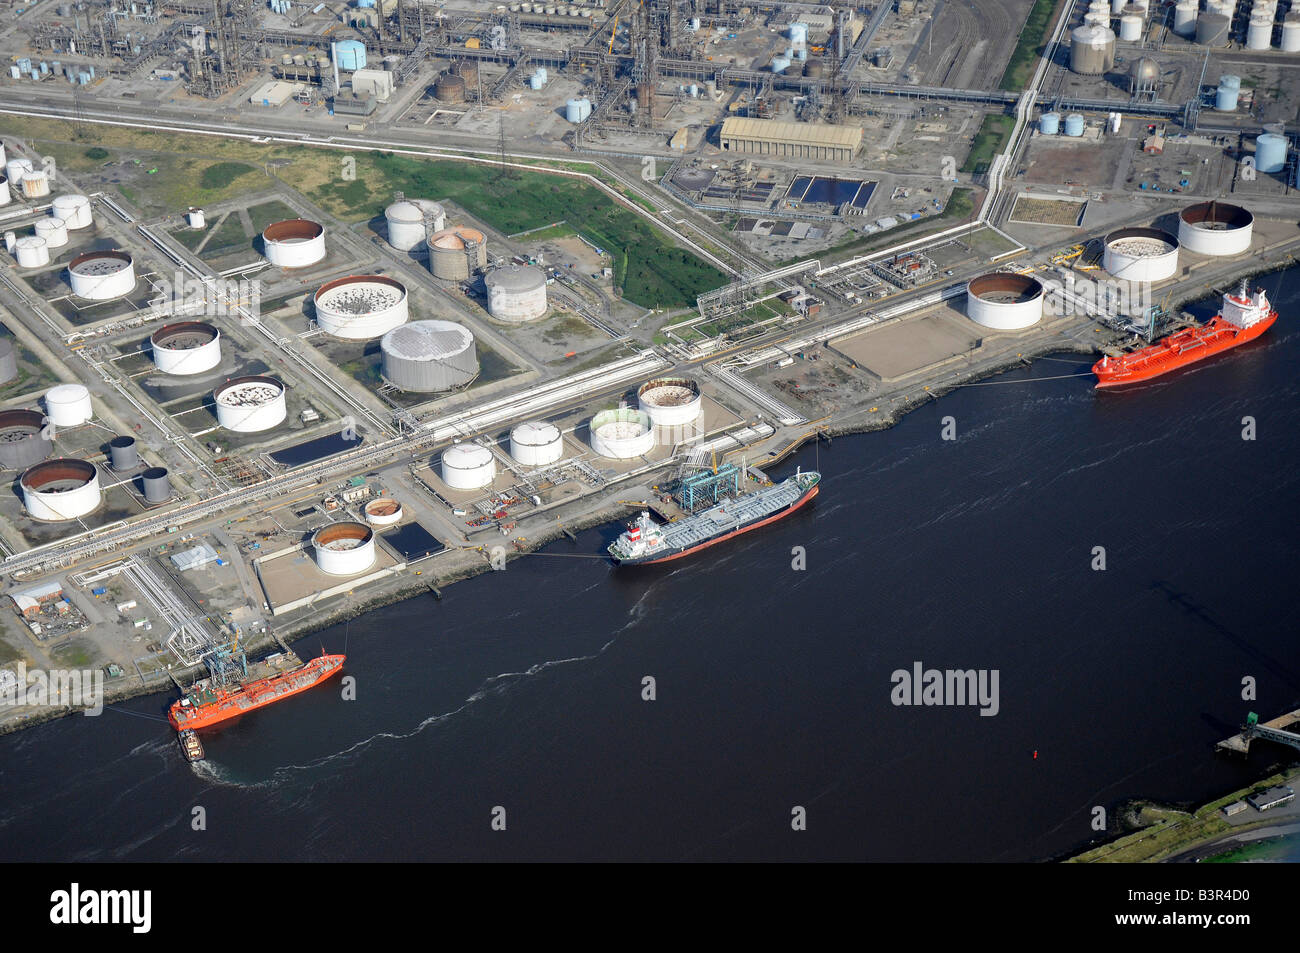 Oil tankers unloading on the River Tees, from the air, Teeside, Northern England - Stock Image